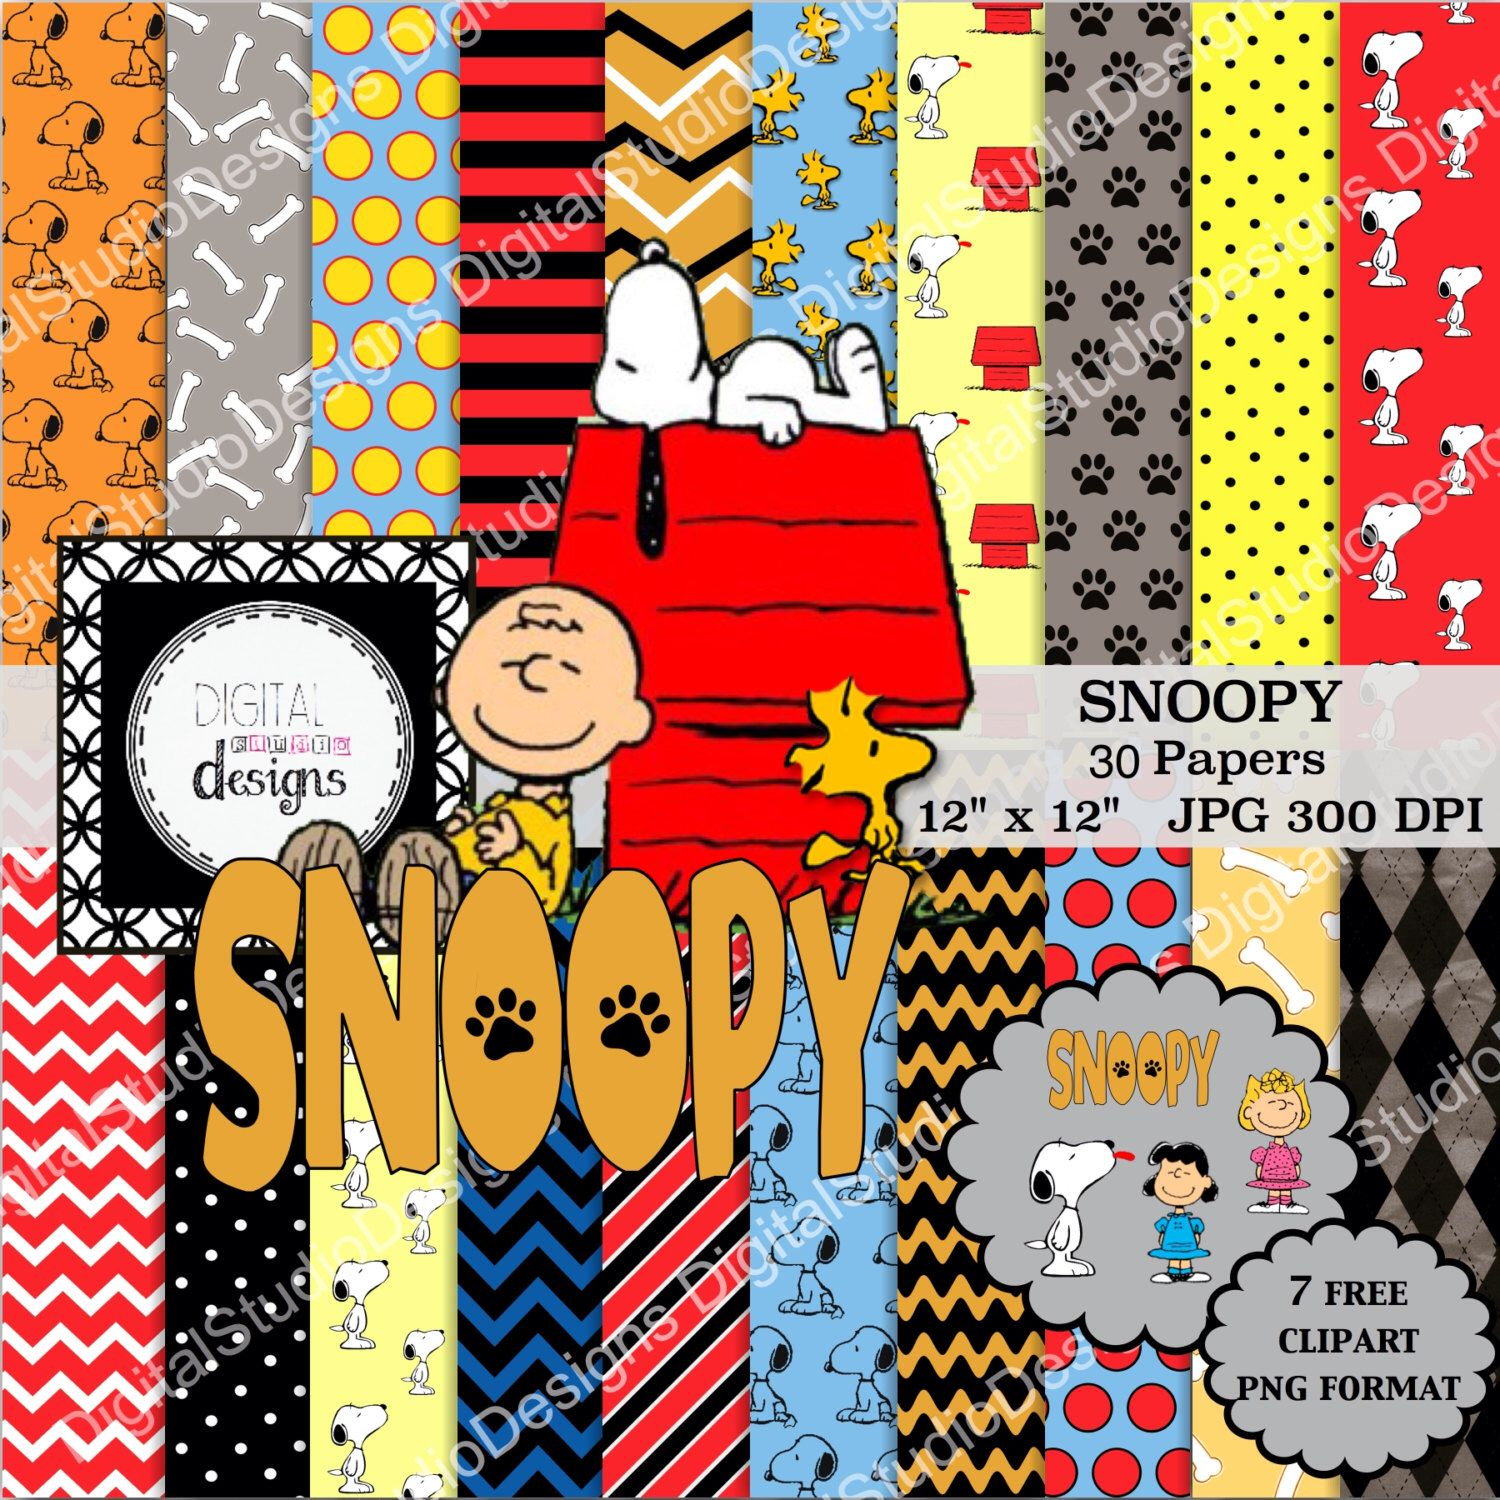 Snoopy Paper Pack 30 Papers 7 Clipart Charlie Brown Peanuts